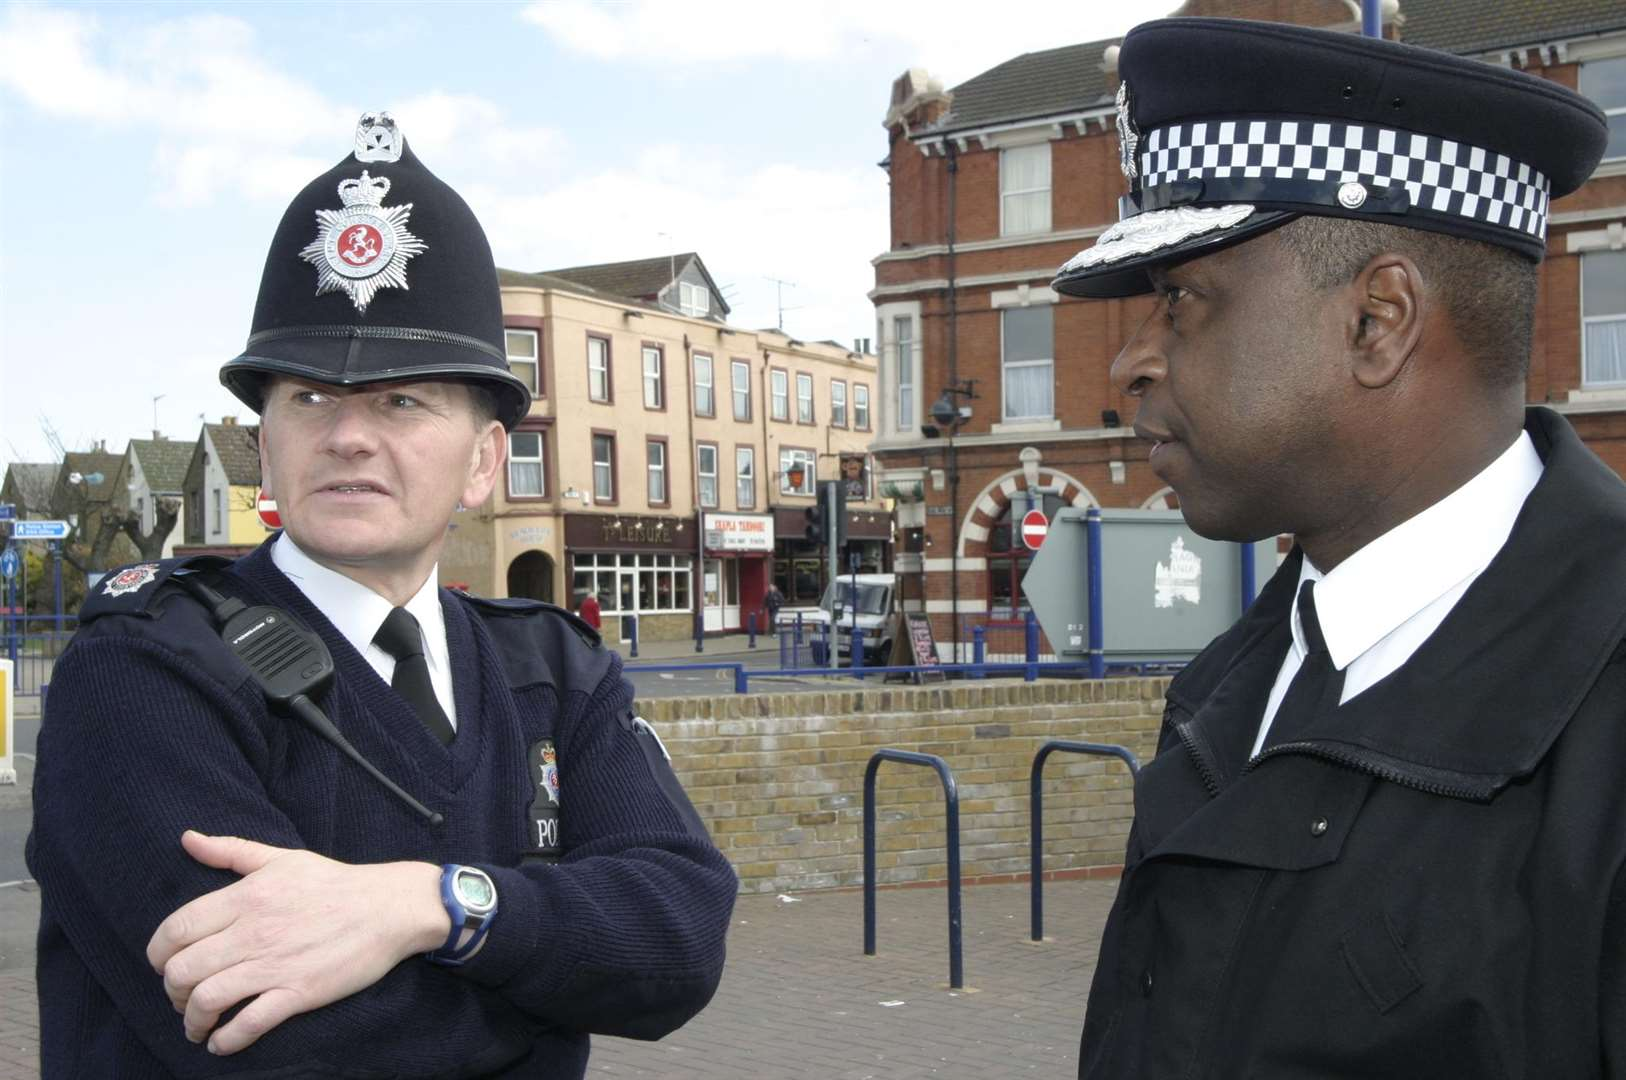 As Kent Chief Constable, Michael Fuller goes on patrol with one of his officers, PC Bob Fursley, in Sheerness